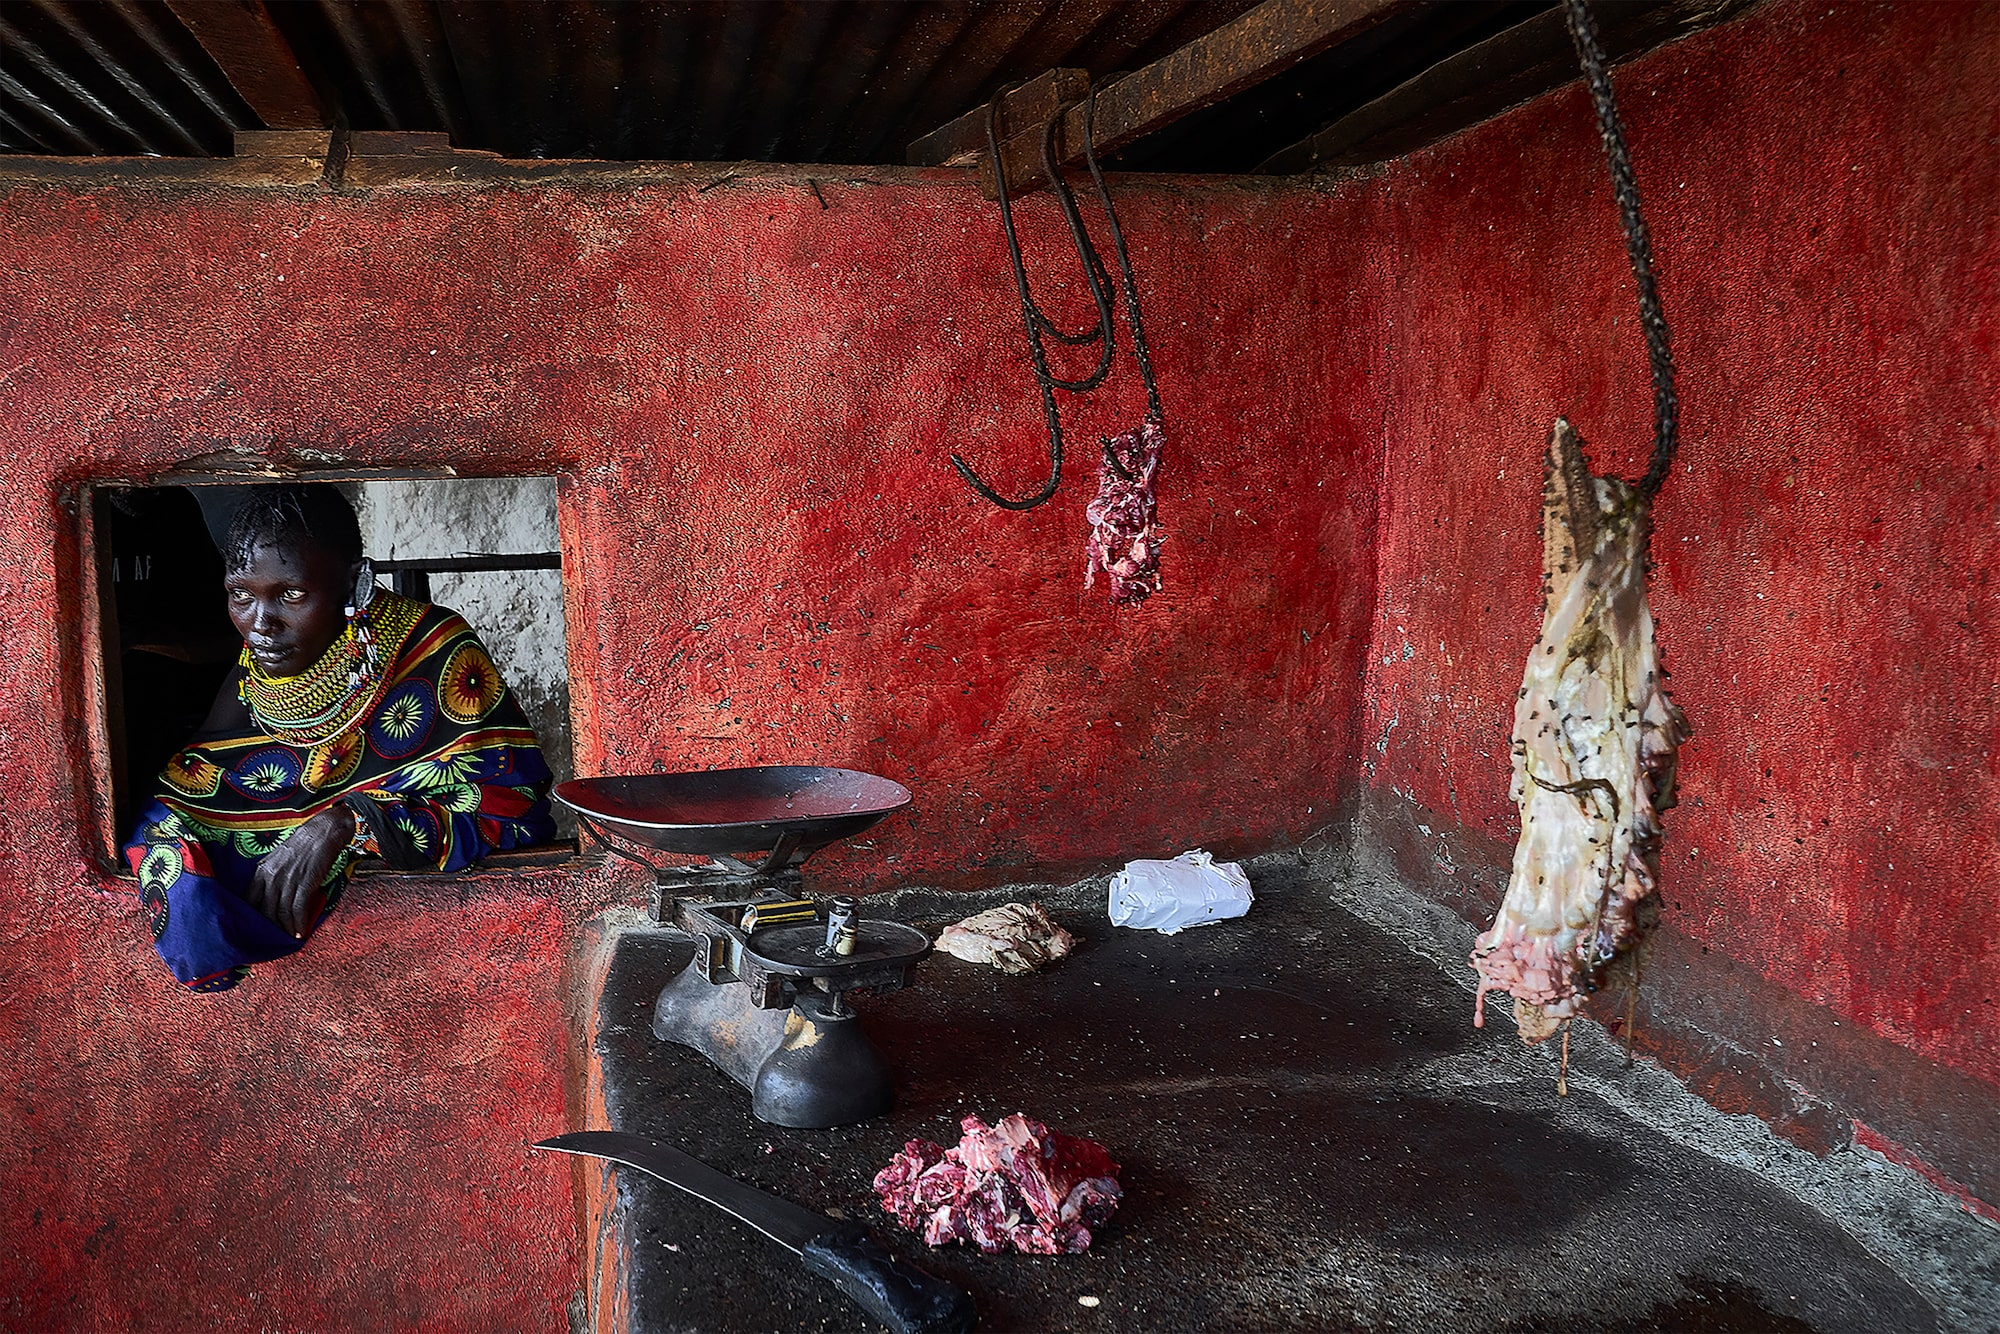 tomasz tomaszewski sony alpha 7RM3 inside a kenyan hut kitchen with meat hanging on hooks